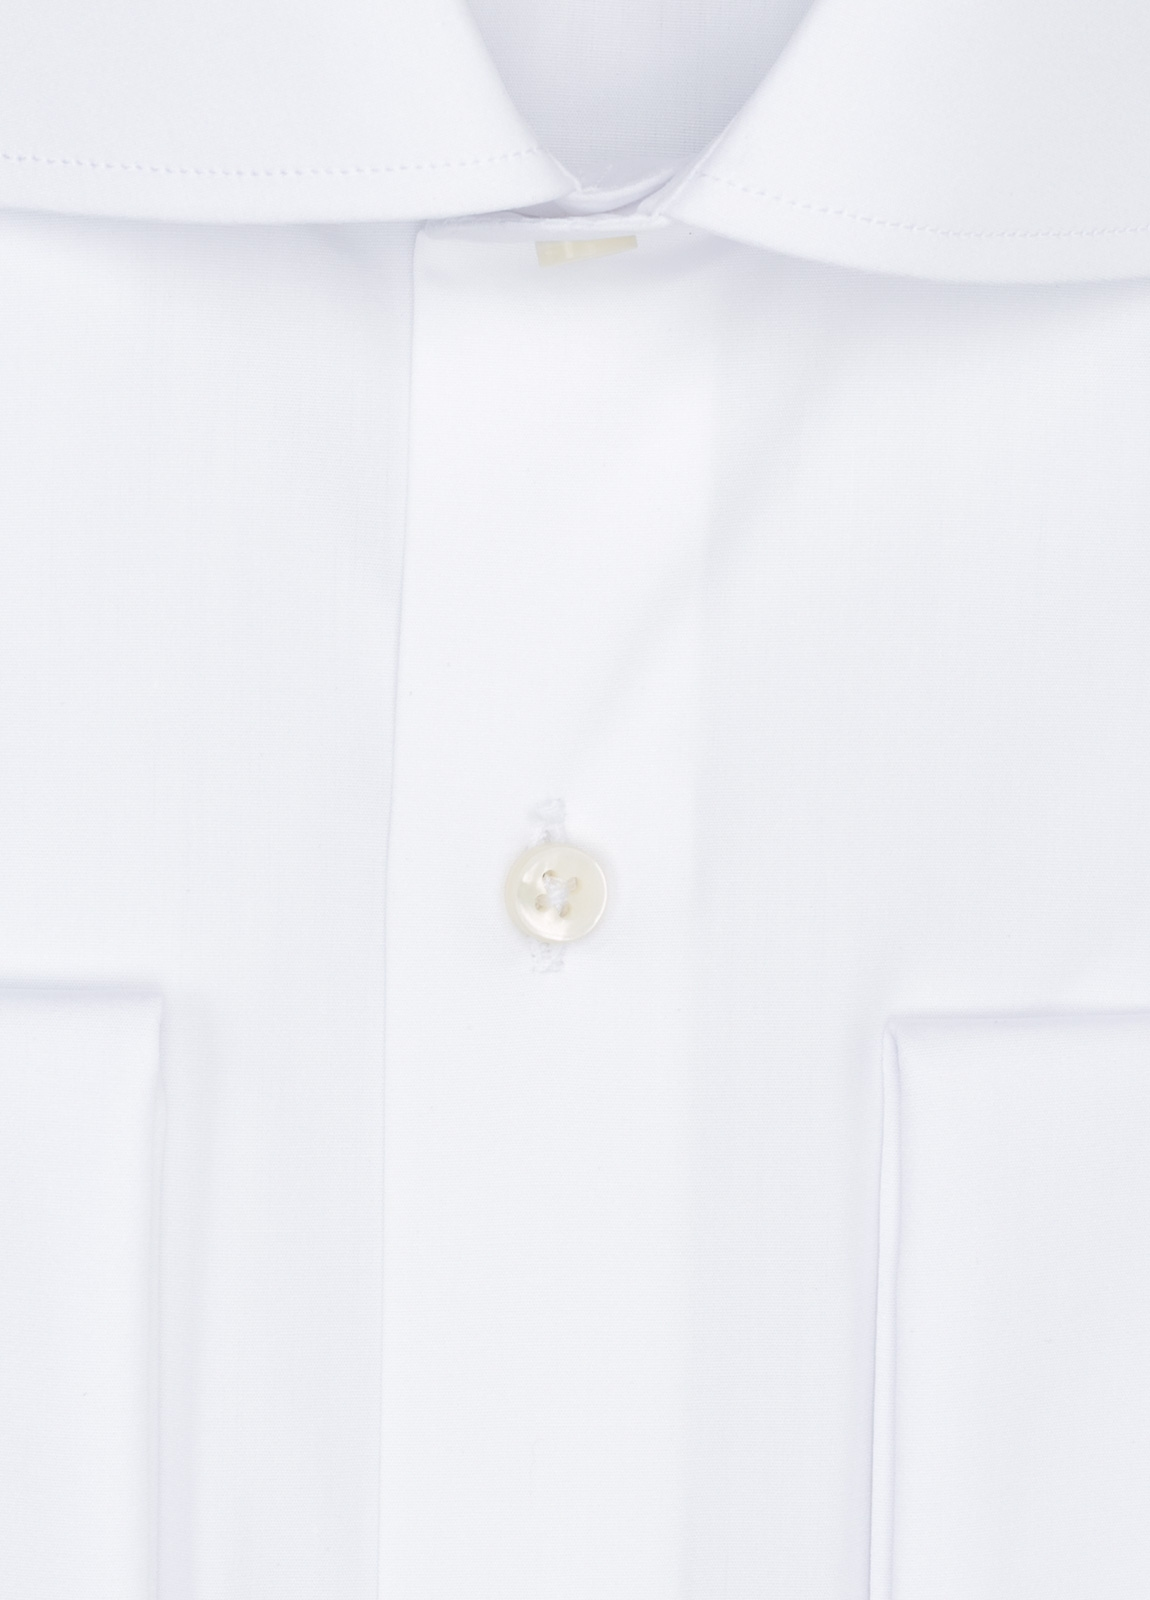 Camisa Formal Wear REGULAR FIT cuello italiano modelo TAILORED NAPOLI color blanco, 100% Algodón. - Ítem1